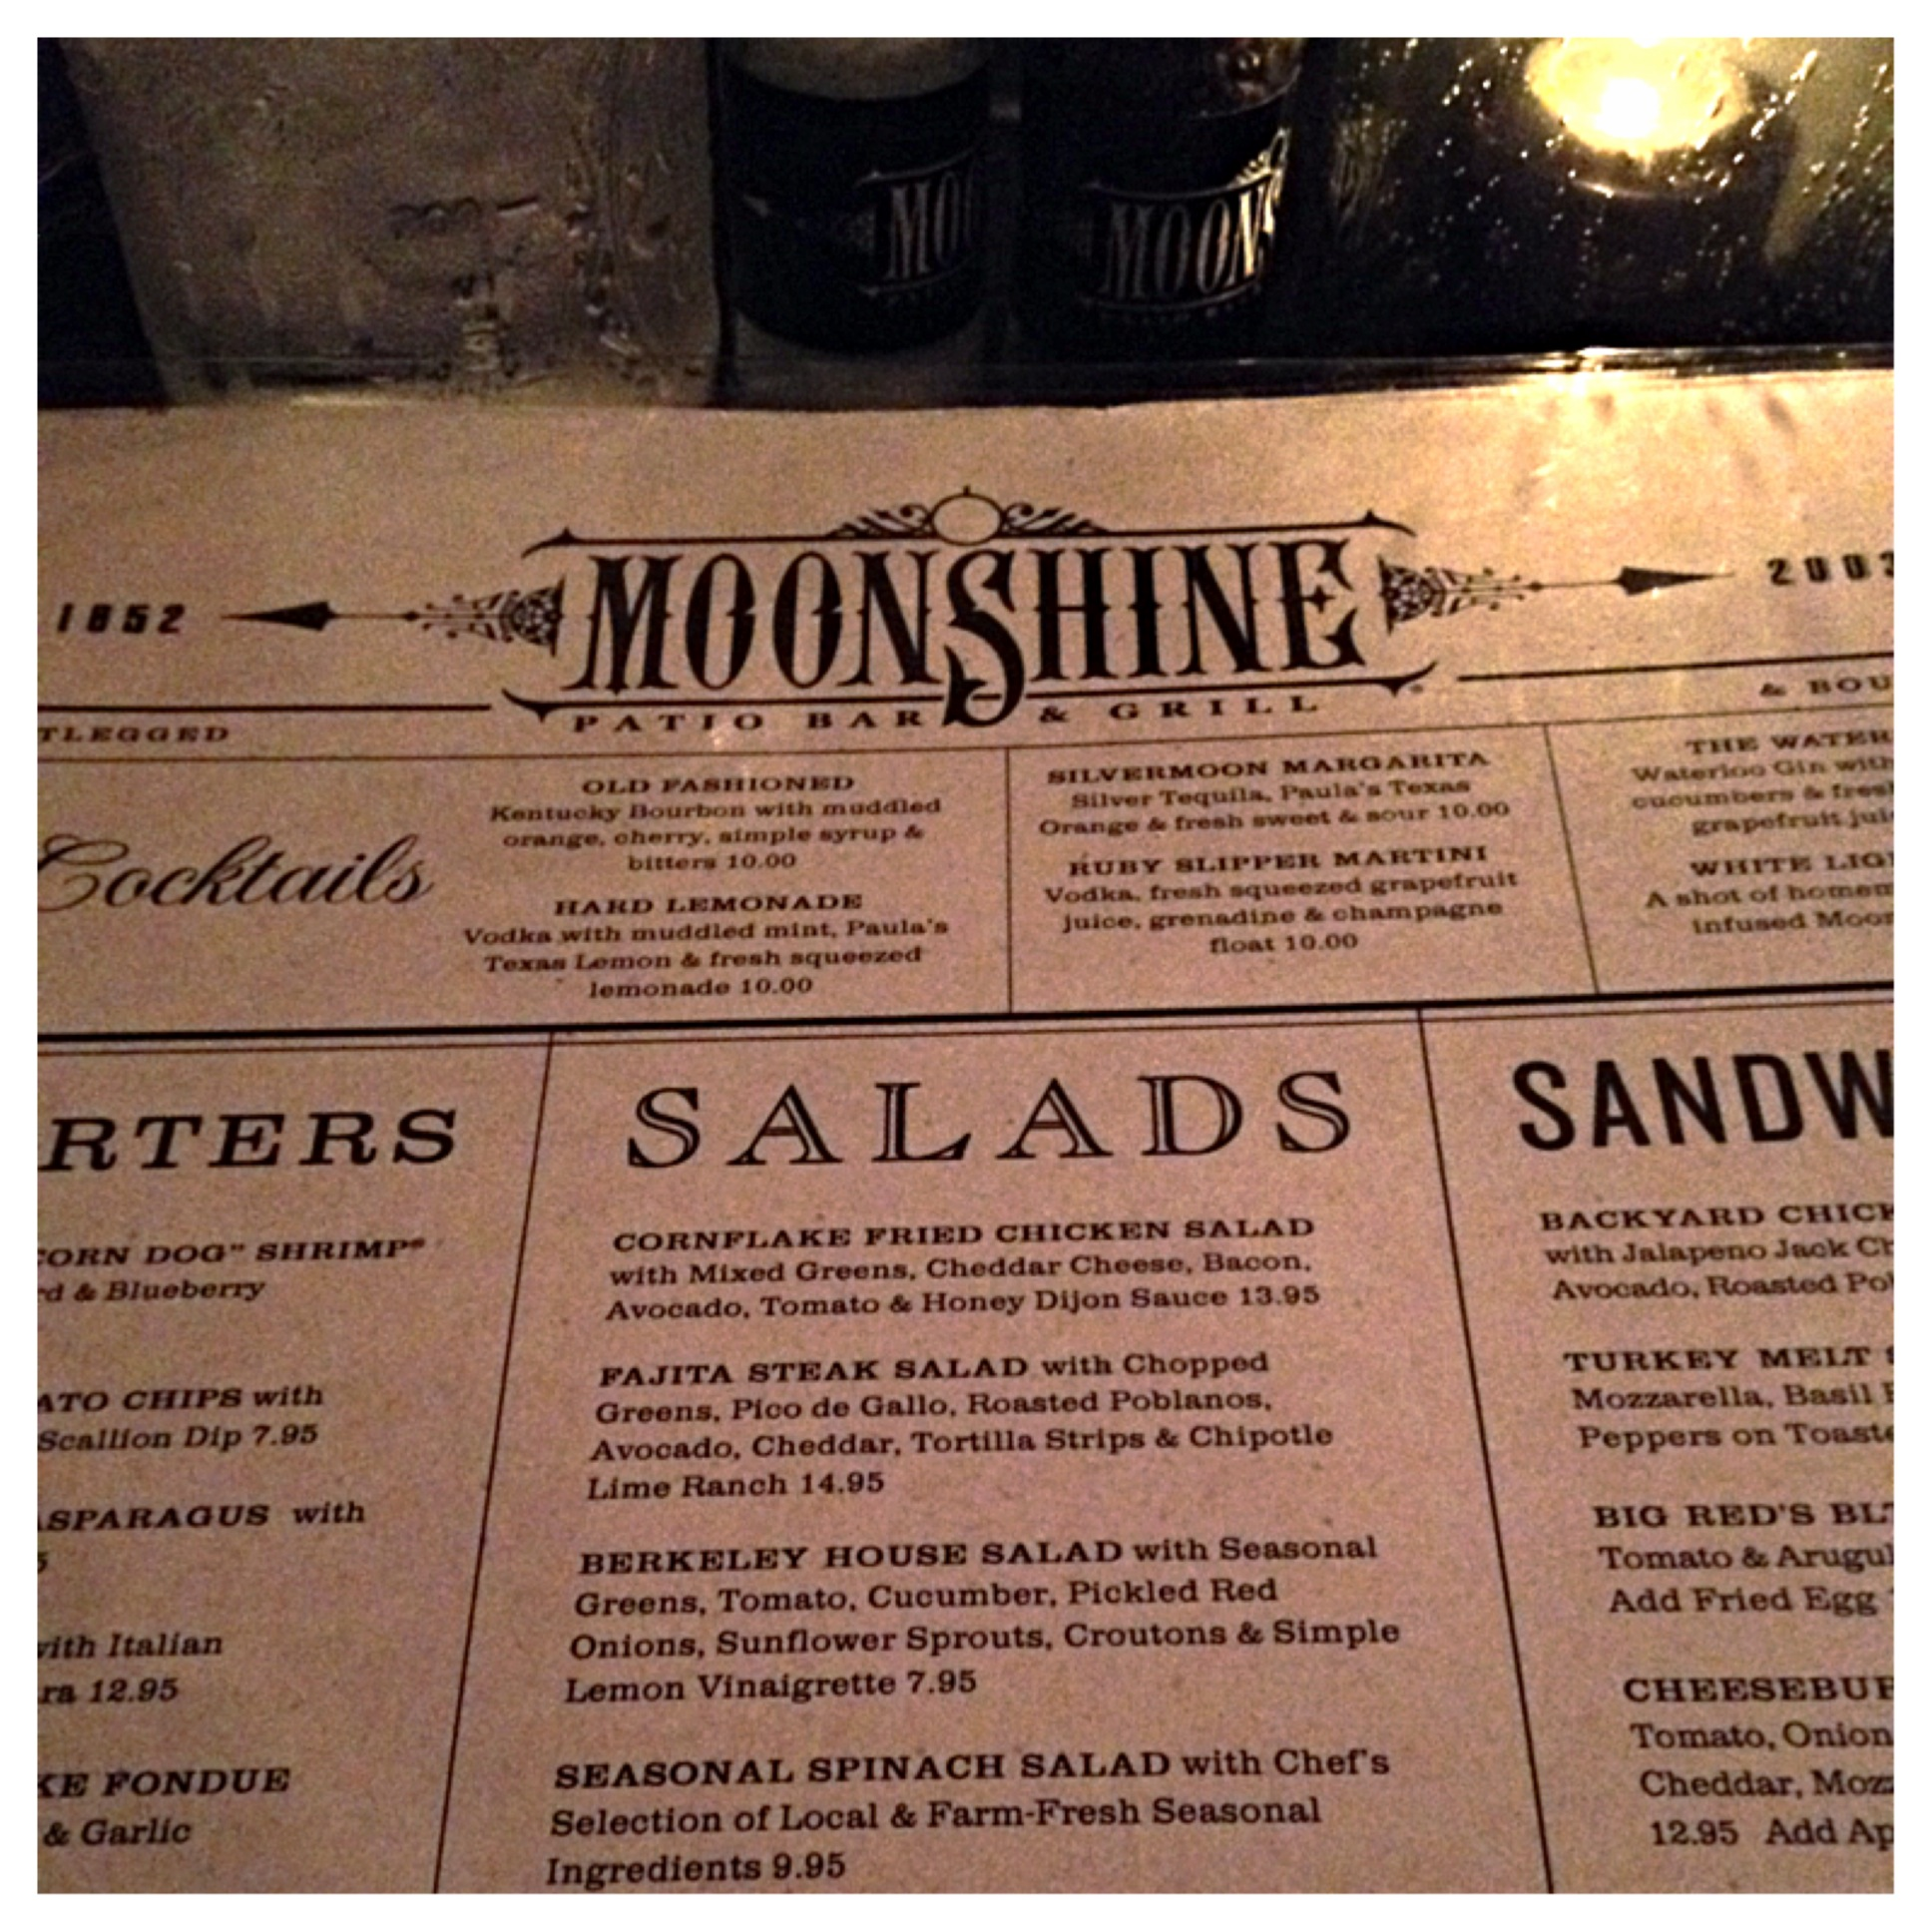 When Iu0027m In Austin, TX, I Like Coming Back To Moonshine Patio Bar And Grill  In The Downtown Area For Their Great Service And Satisfying Food.